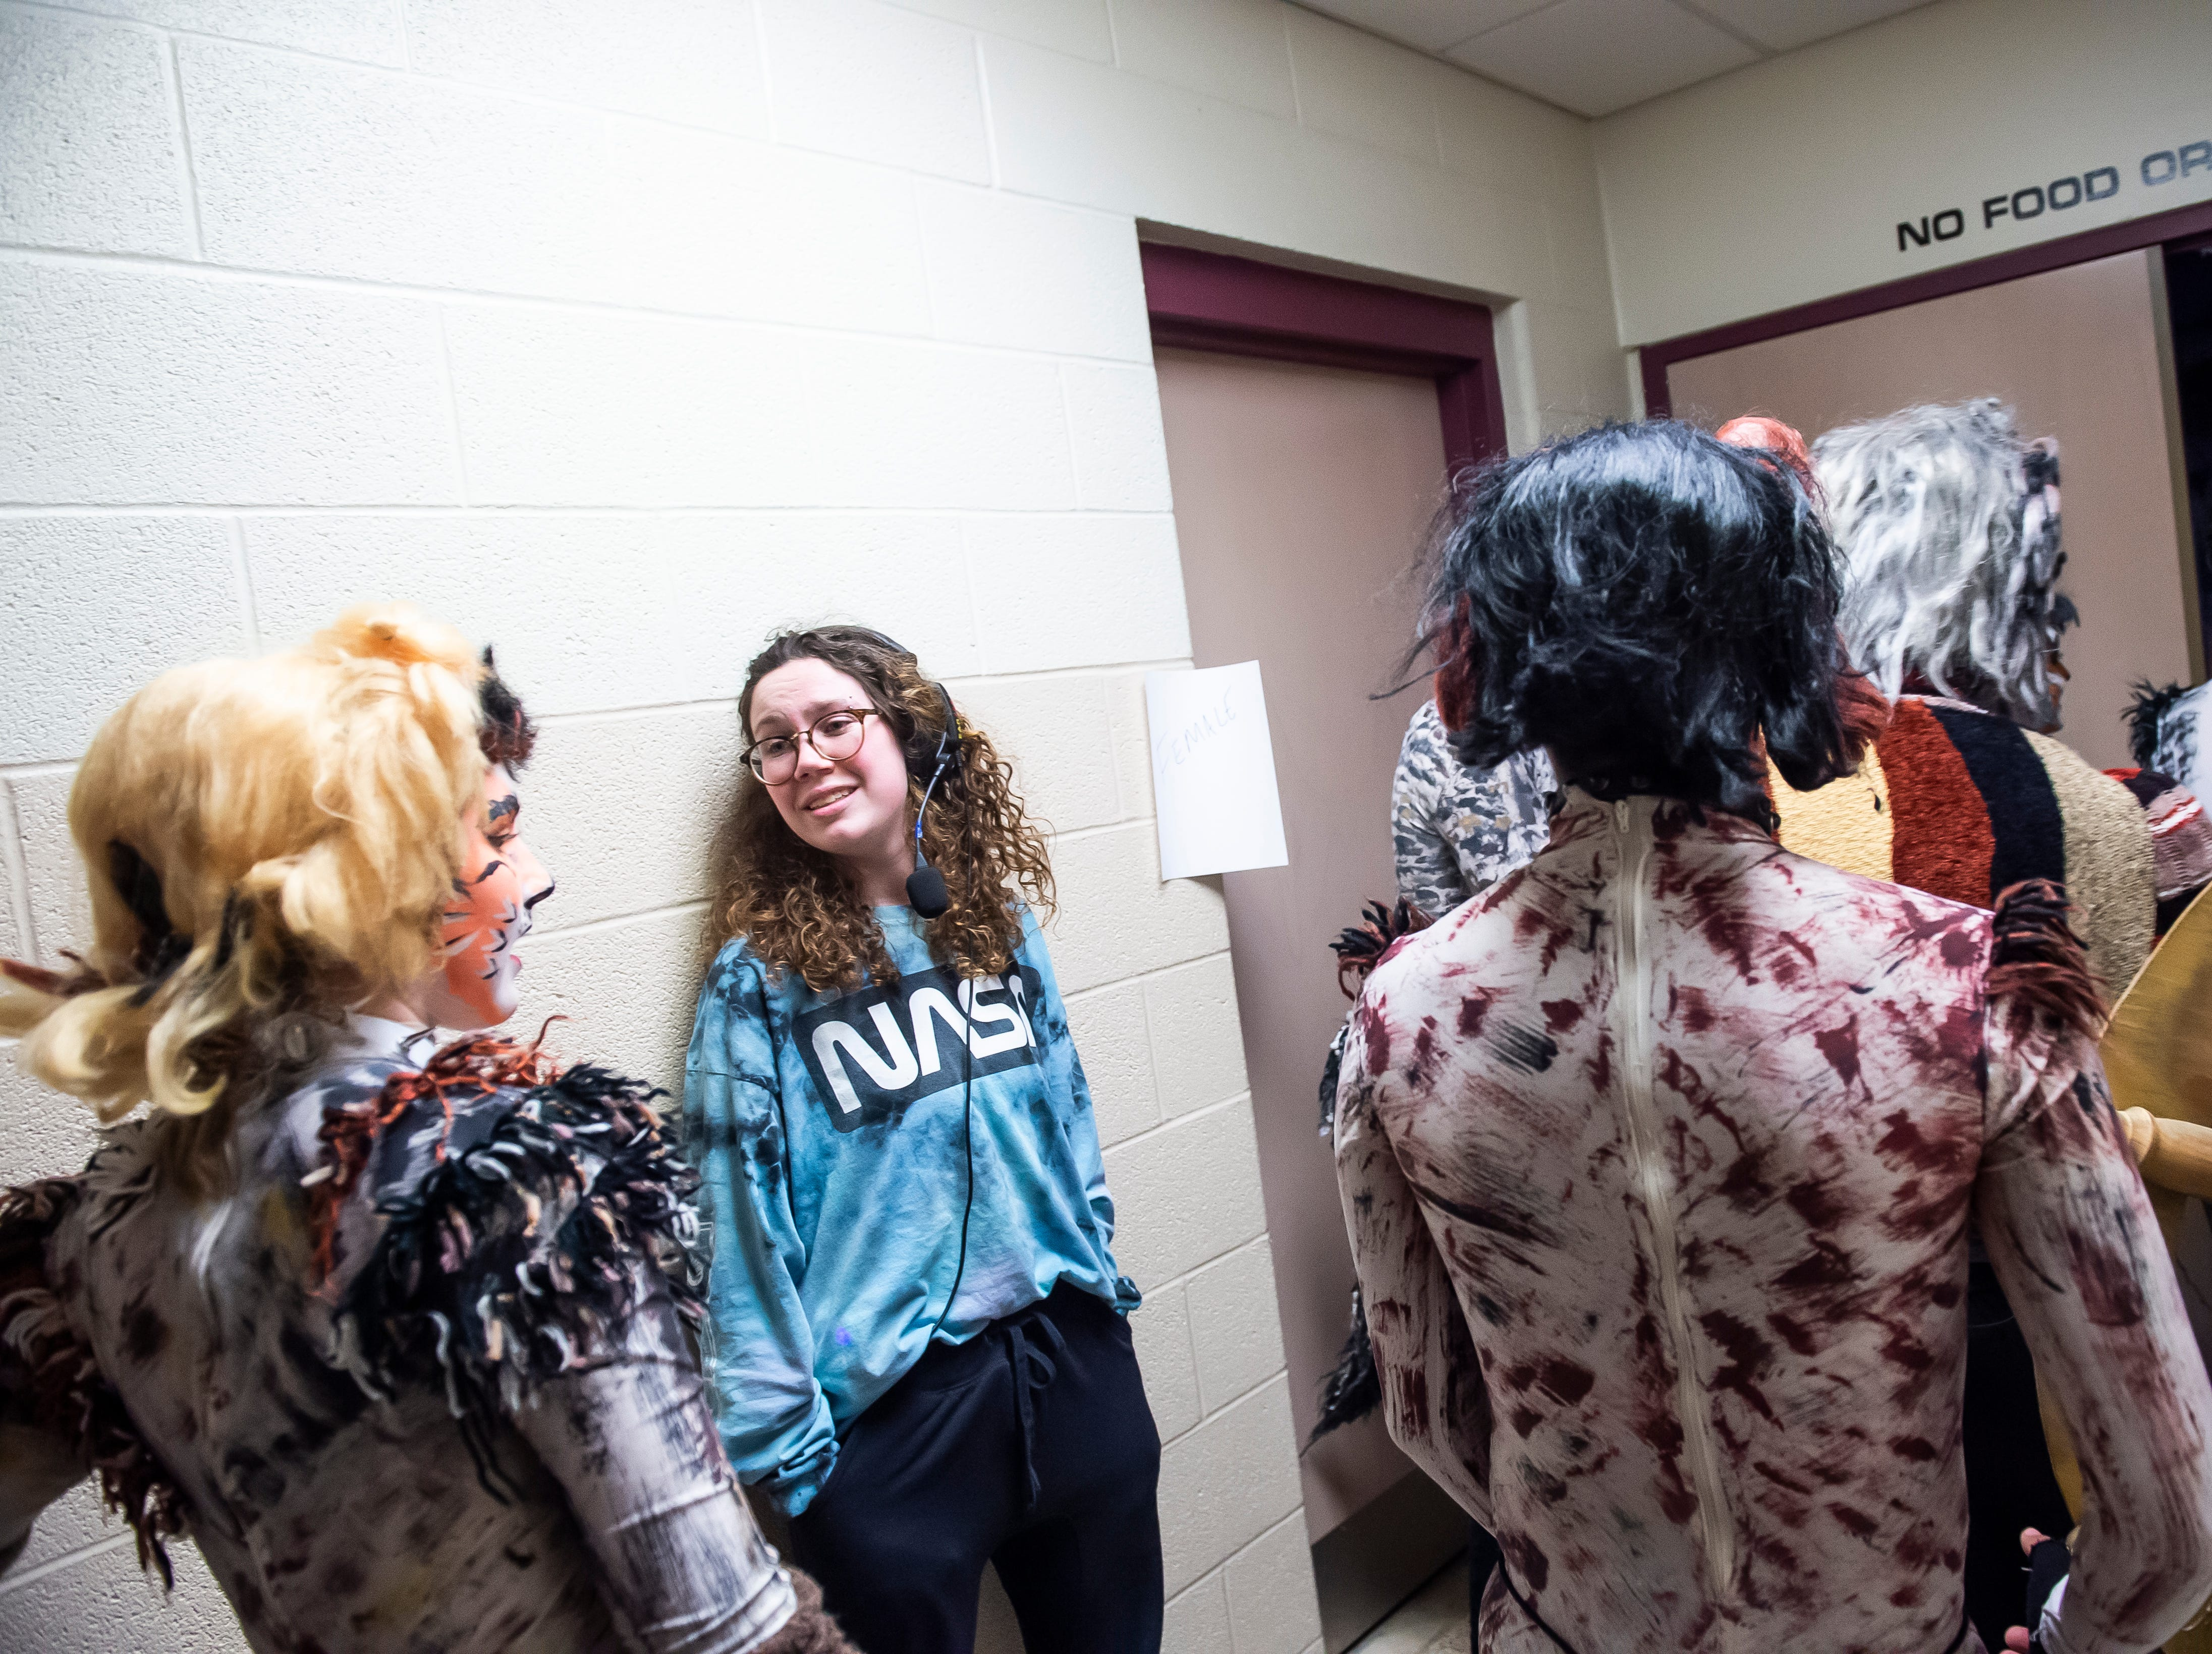 """Hanover High School students head back on stage for the start of the second act of a dress rehearsal for their production of the musical """"Cats"""" on Wednesday, April 10, 2019."""